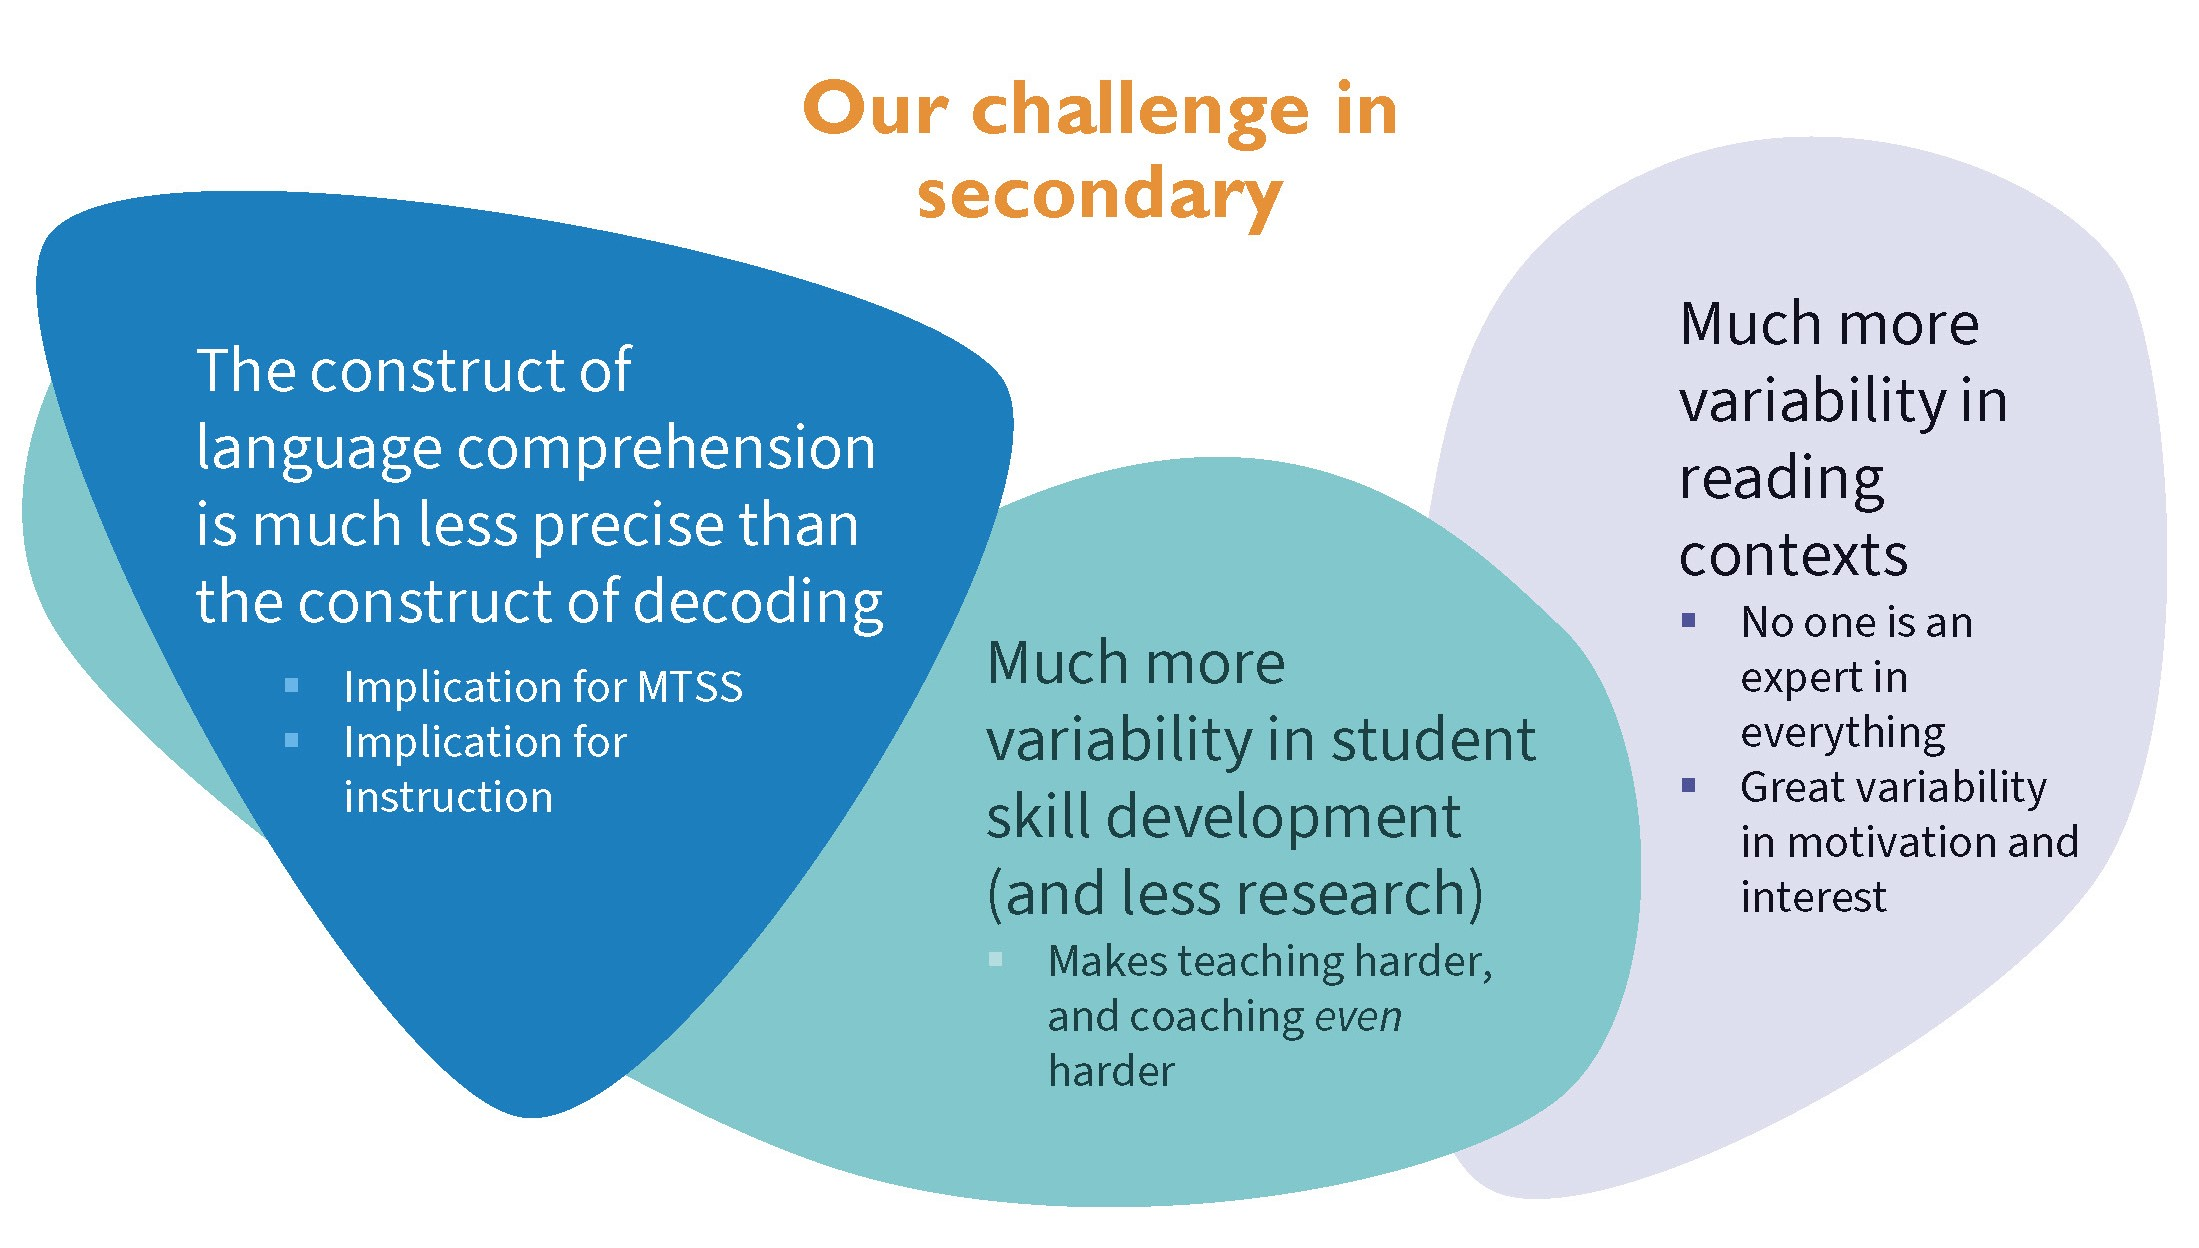 Our challenge in secondary schools